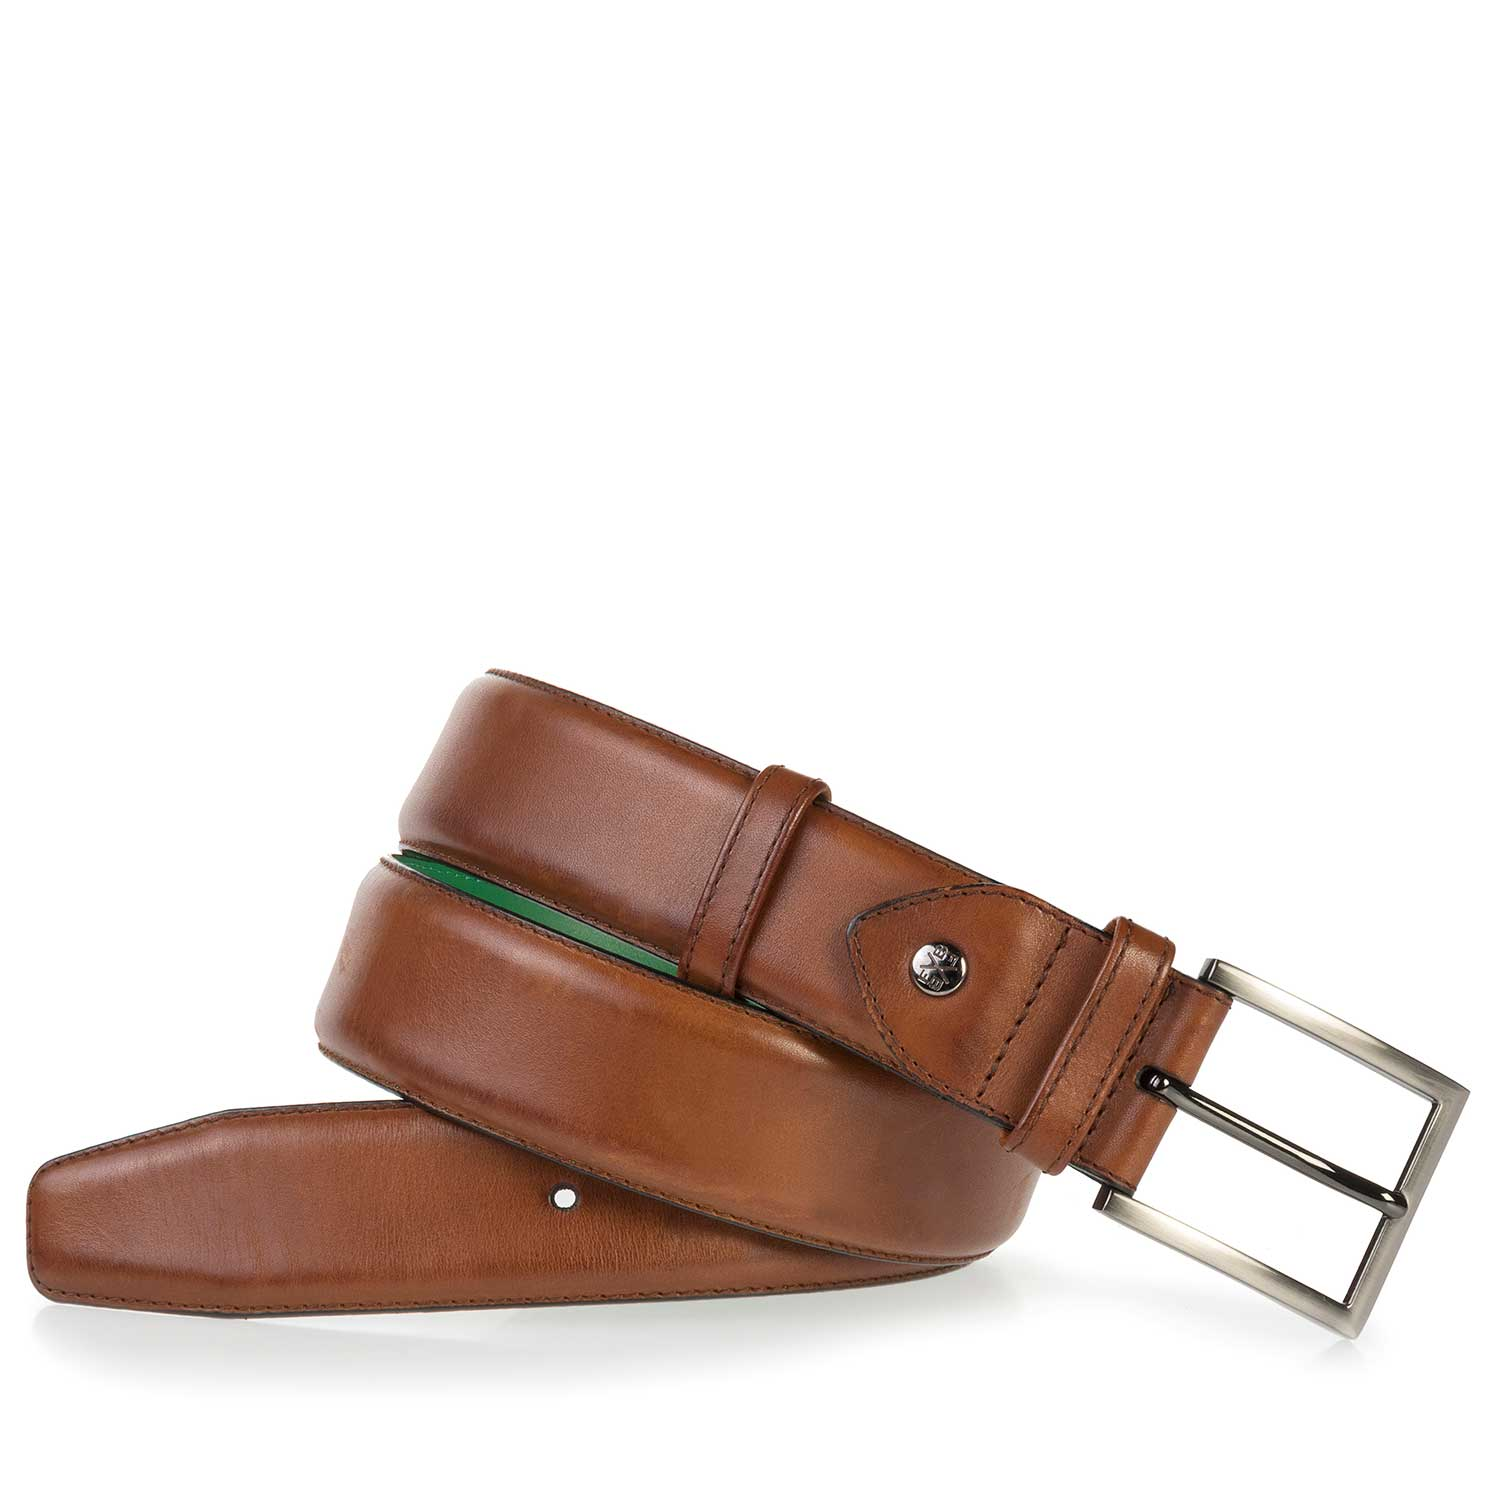 75178/00 - Cognac-coloured leather belt